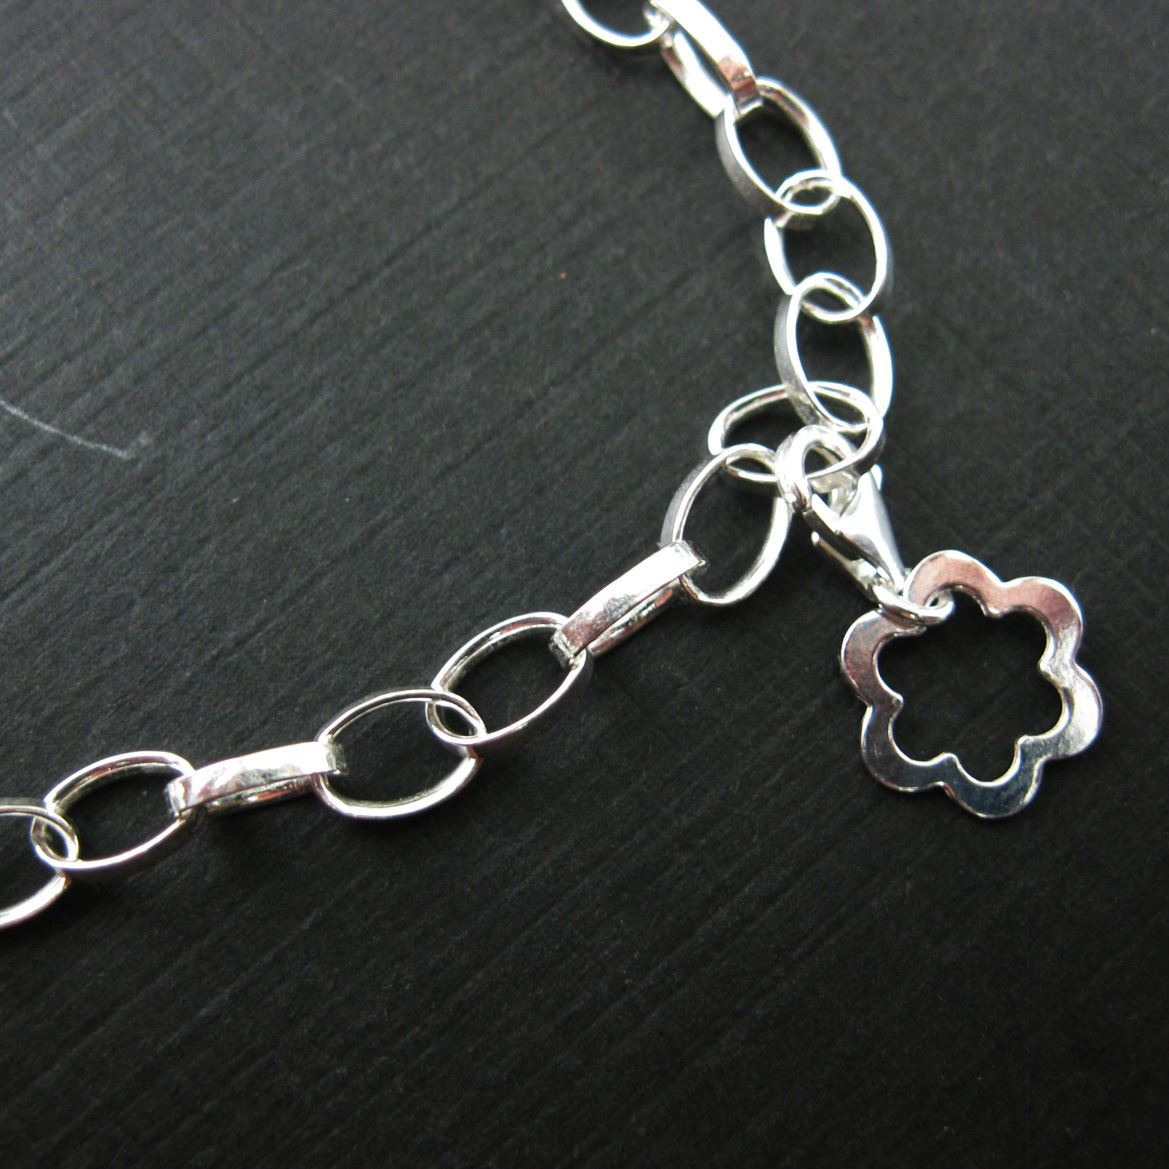 Sterling Silver Lovely Flower Charm - Charm with Clasp - Charm Bracelet Charm- Add on Charm